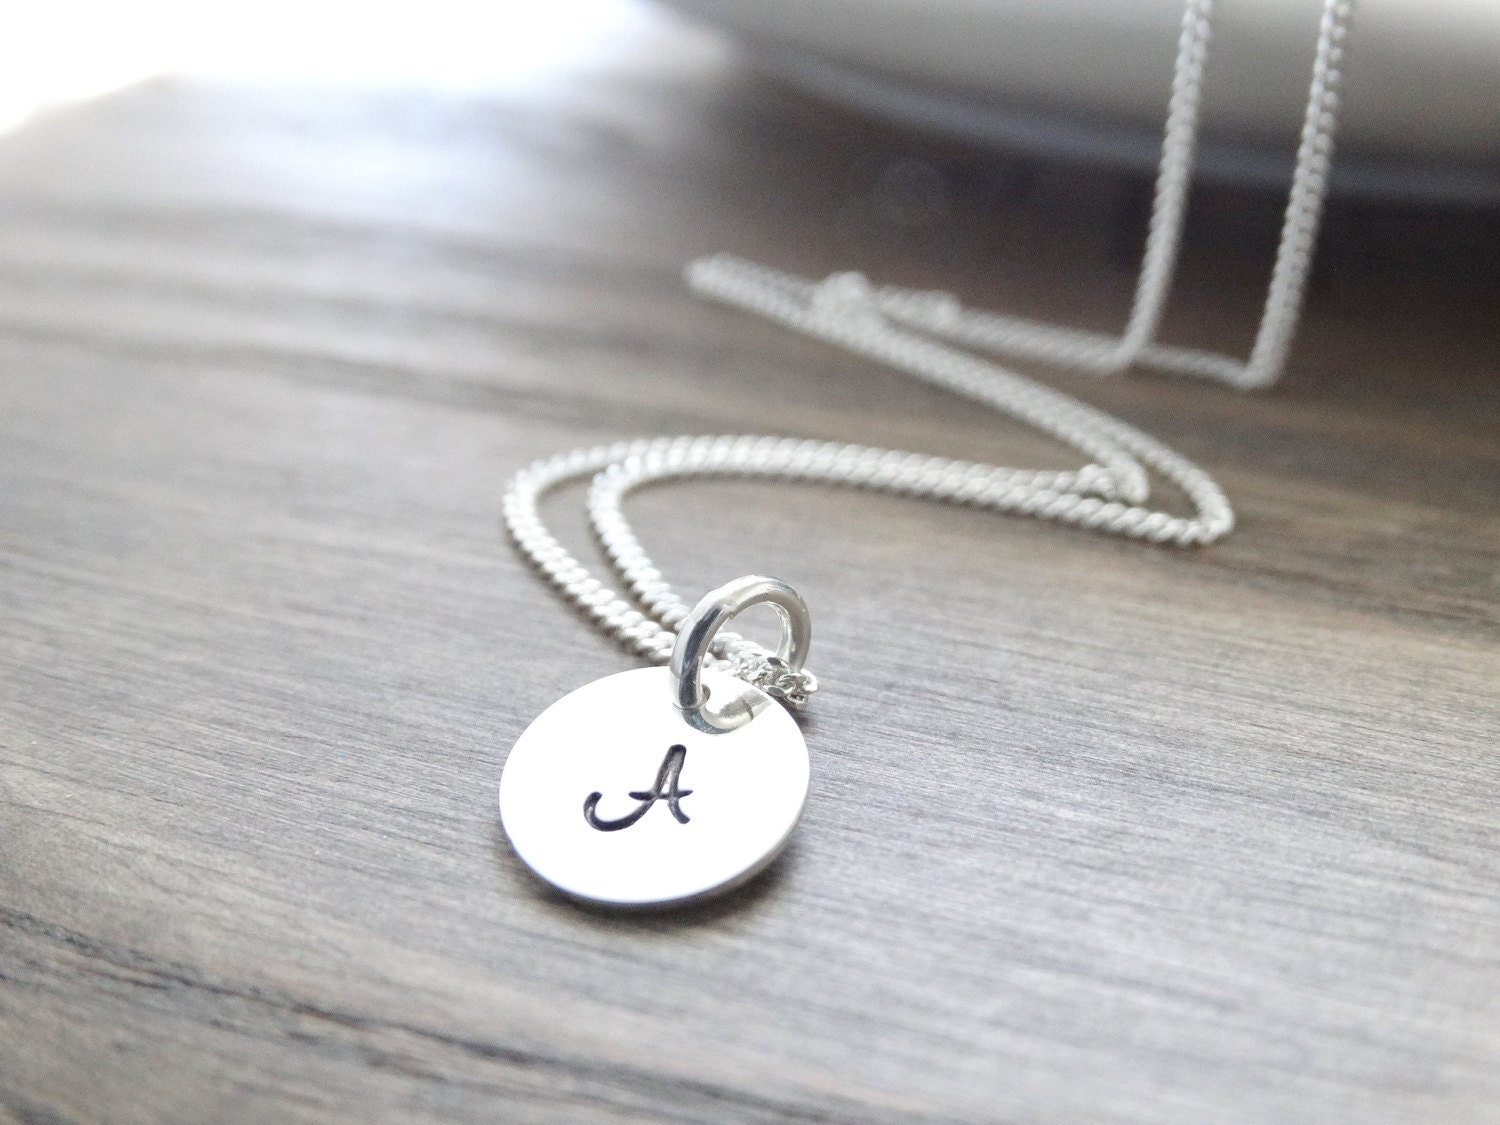 Silver Initial Necklace Sterling Silver monogram necklace silver